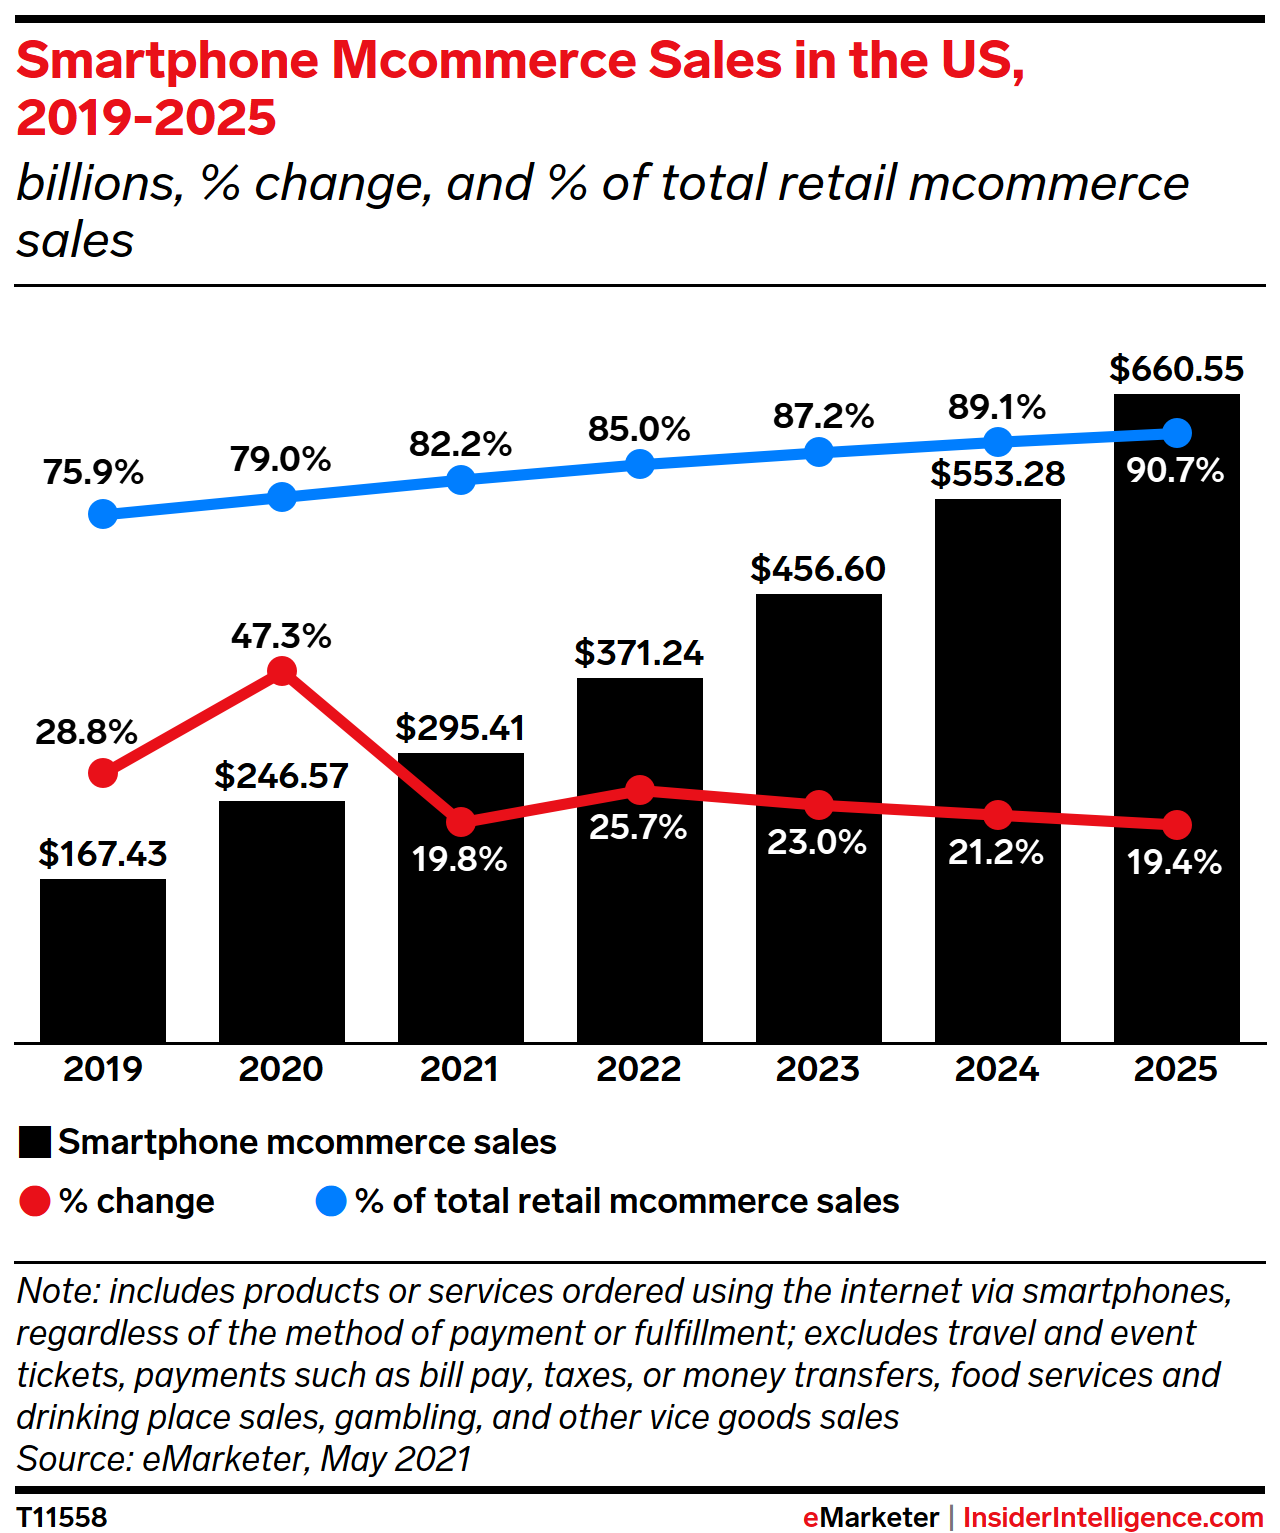 Smartphone Mcommerce Sales in the US, 2019-2025 (billions, % change, and % of total retail mcommerce sales)